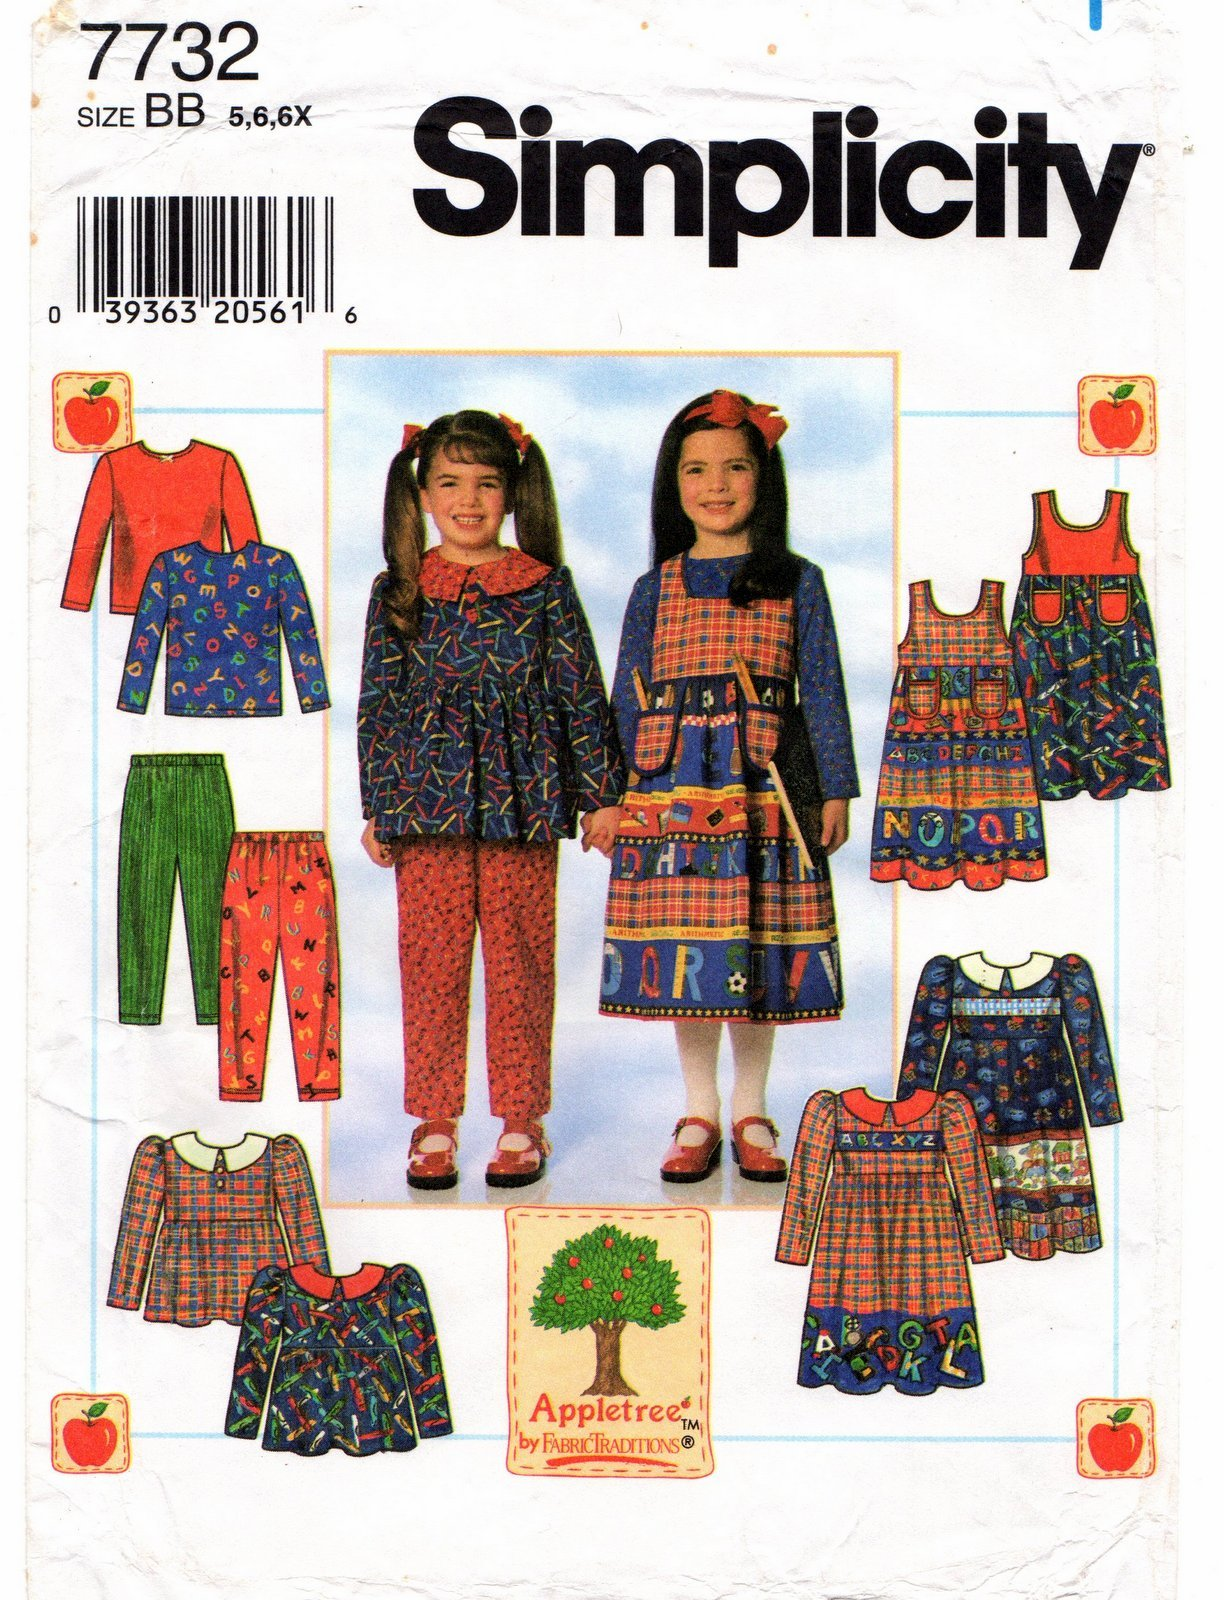 Simplicity 7732 Child's Dress or Tunic, Jumper, Pants and Top Size 5.6.6X Uncut